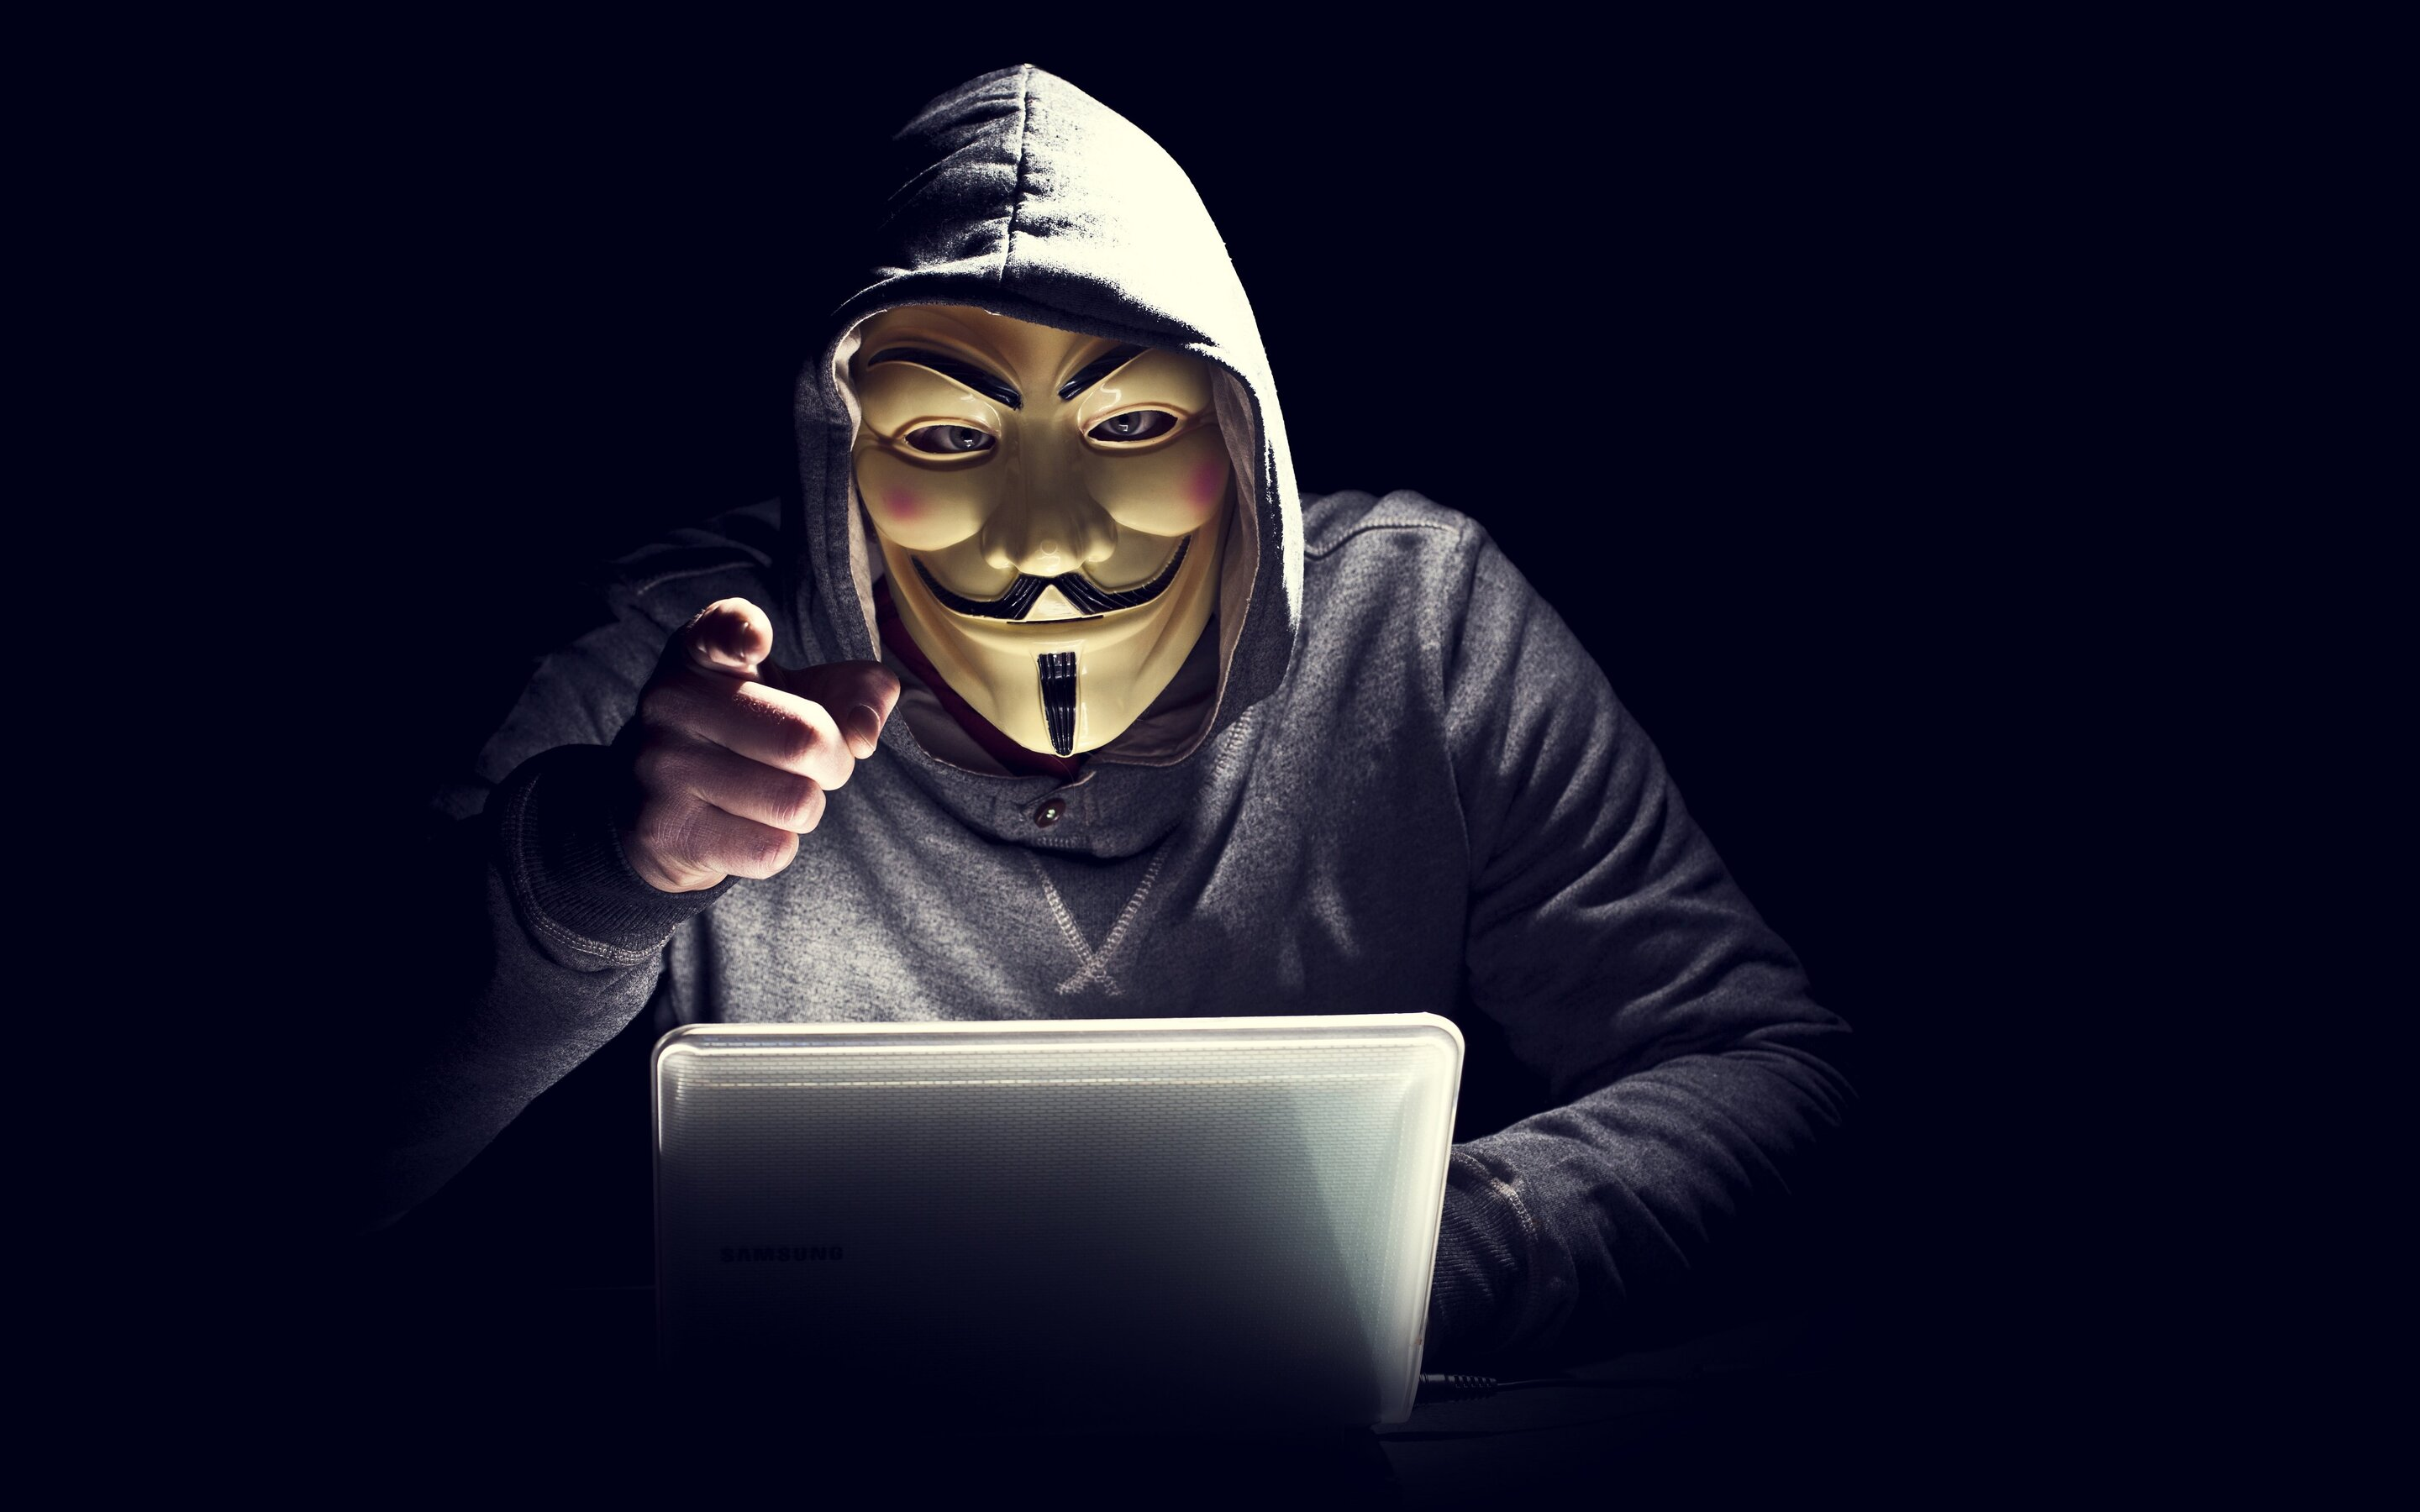 anonymus-hacker-in-mask-pointing-finger-mj.jpg